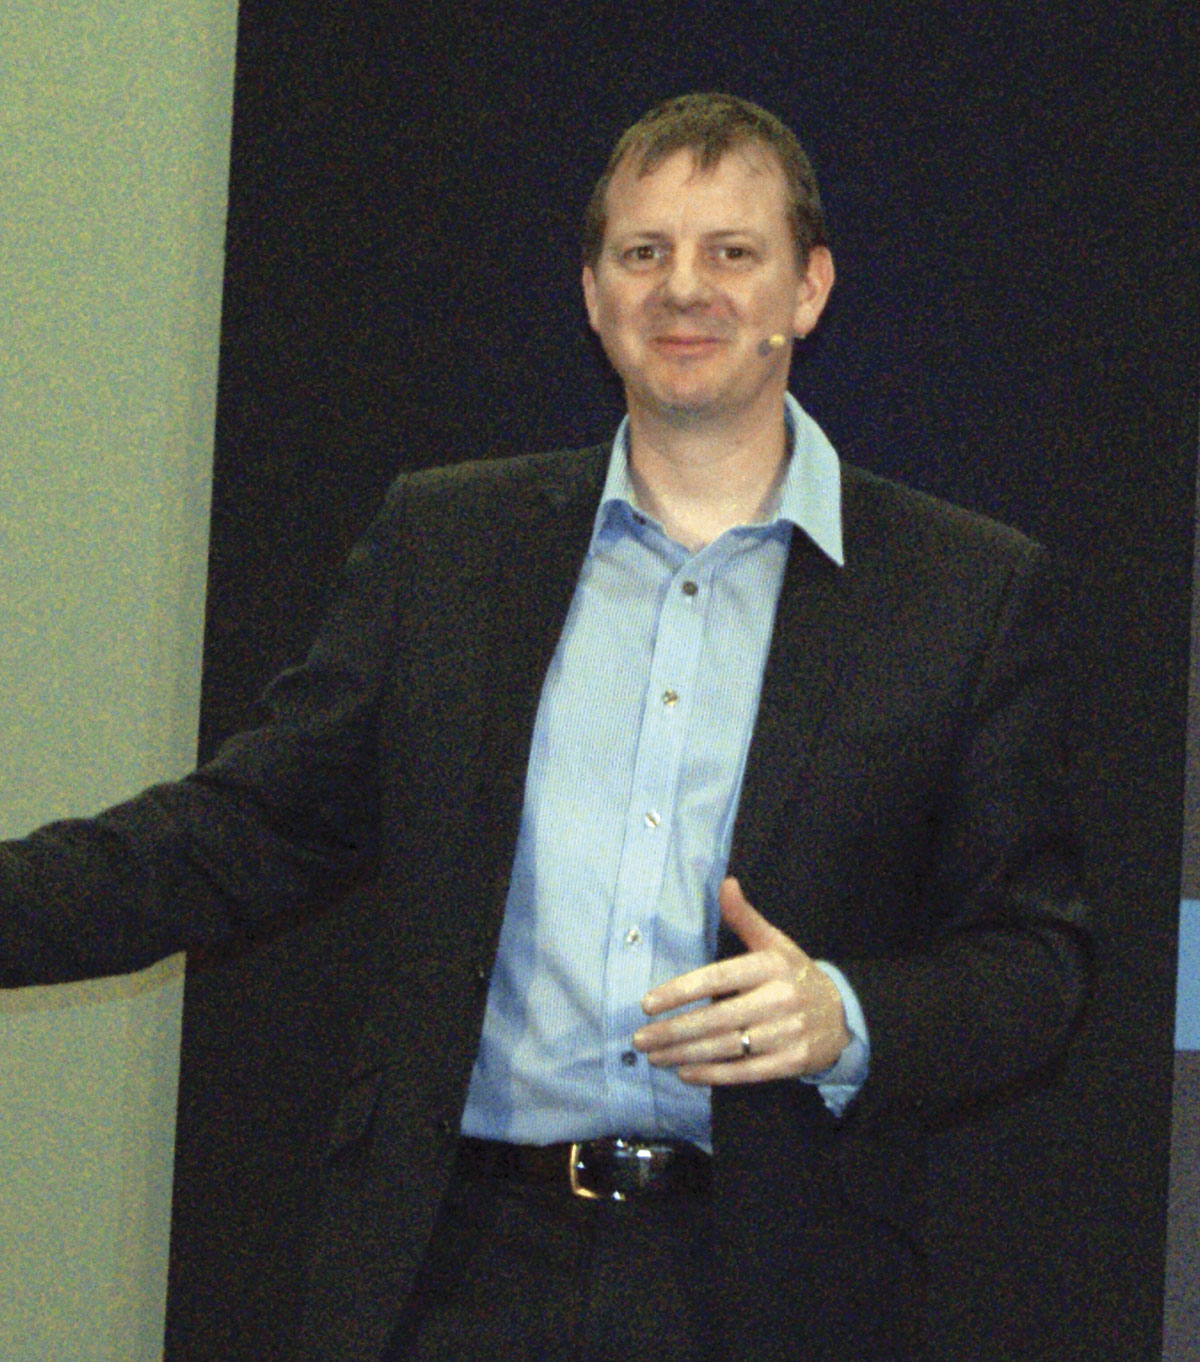 Head of TfL Online, Phil Young